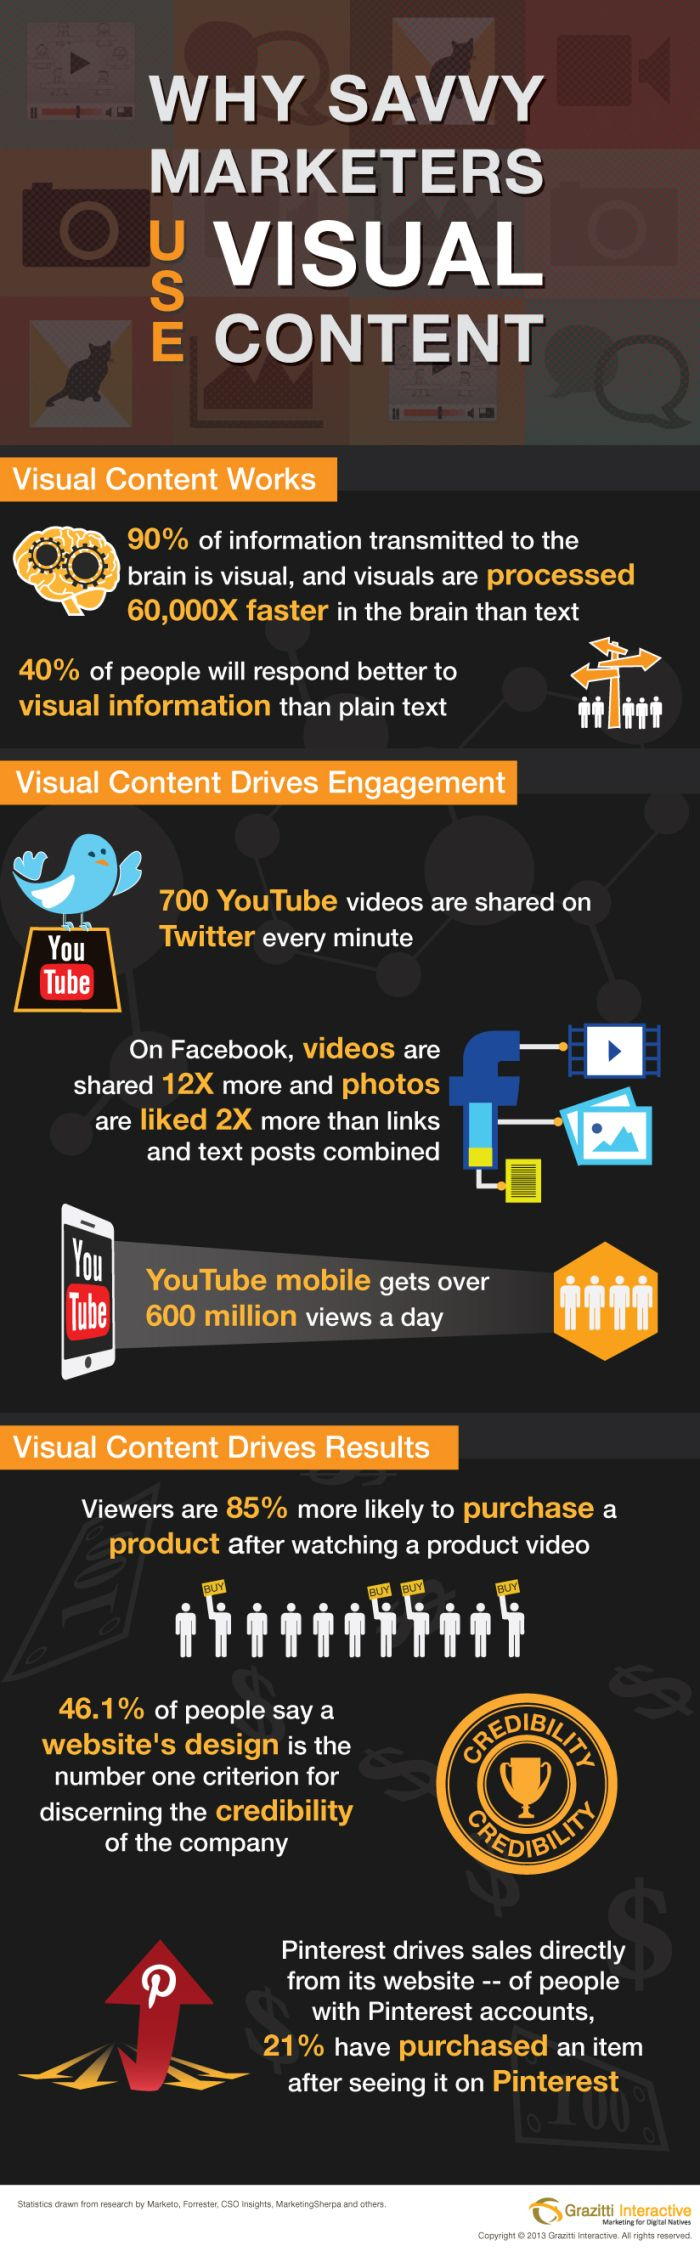 Why Saavy Marketers Use Visual Content #indigital